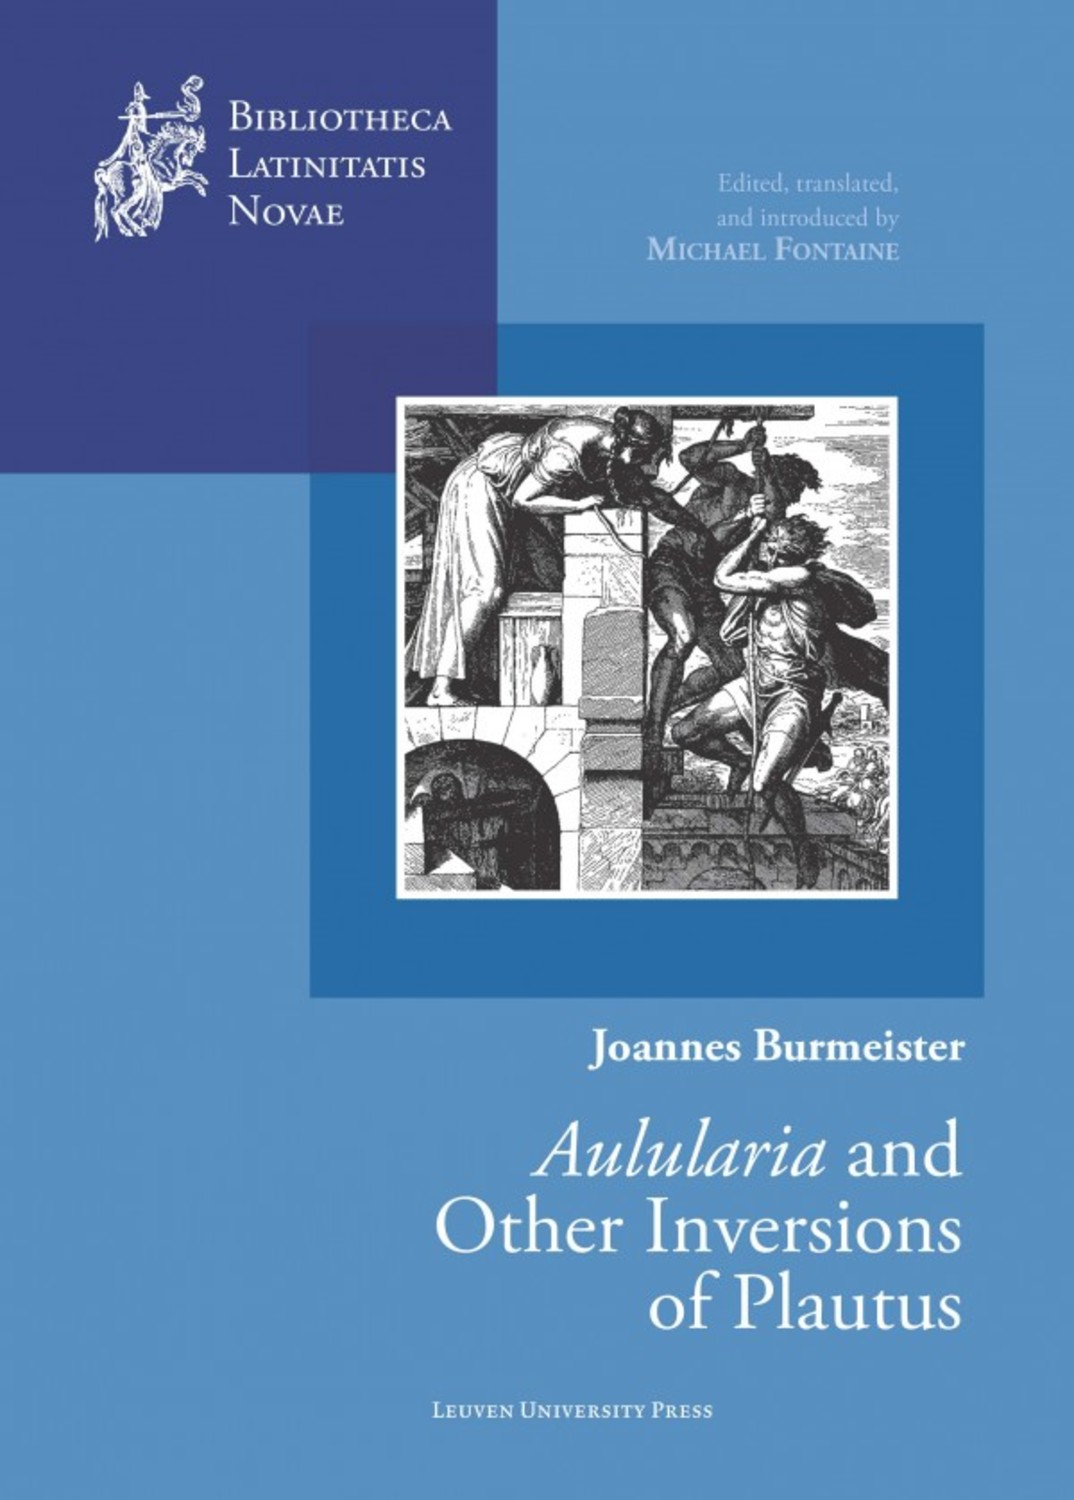 Aulularia and other Inversions of Plautus